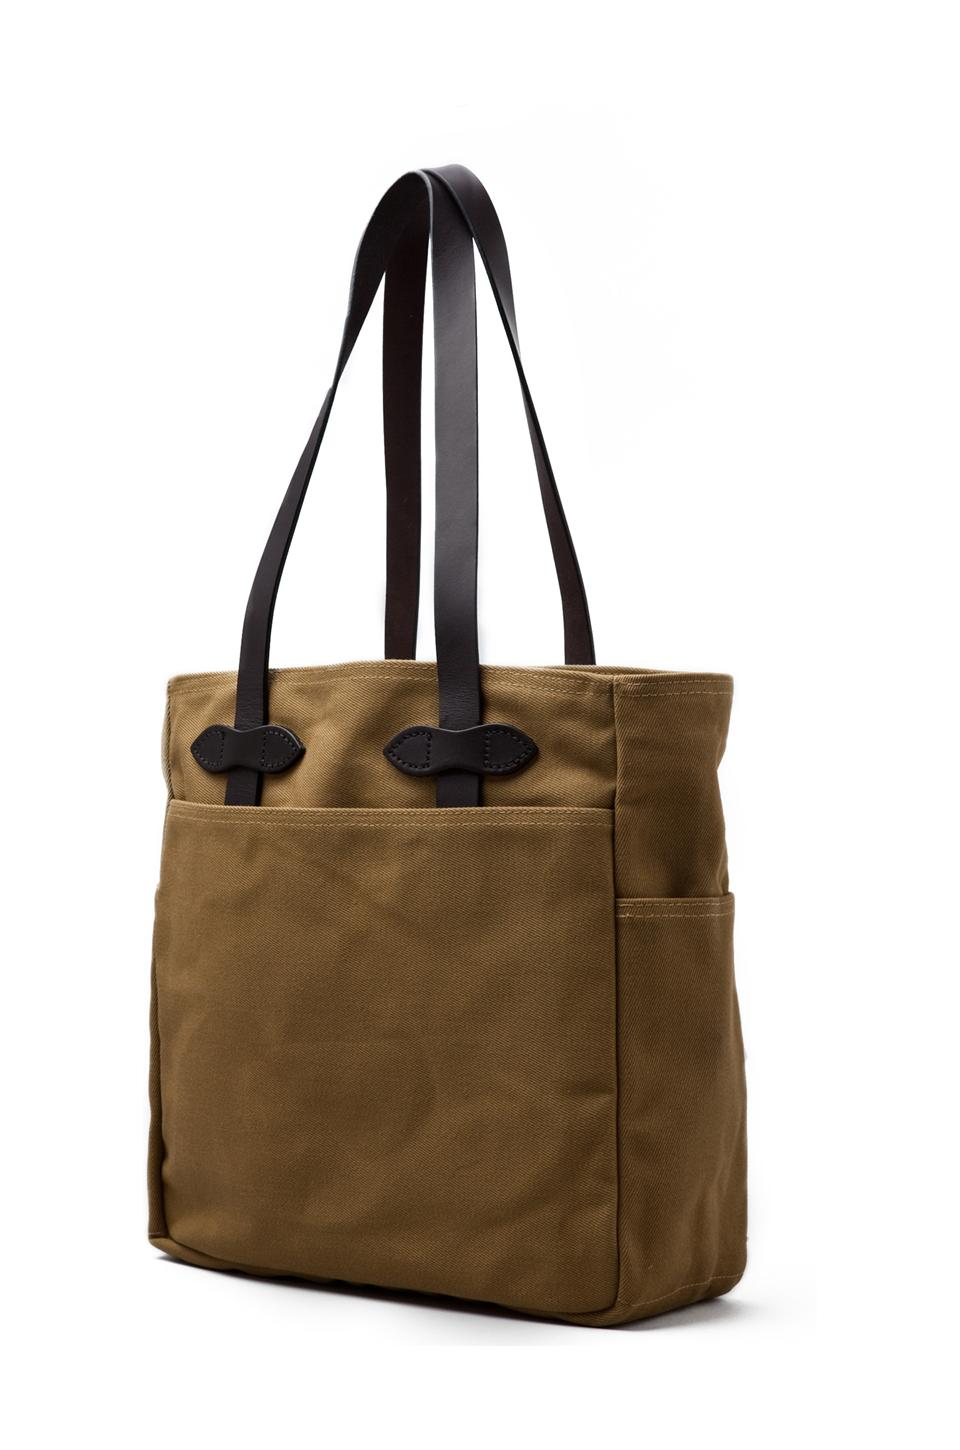 Filson Tote Bag in Tan